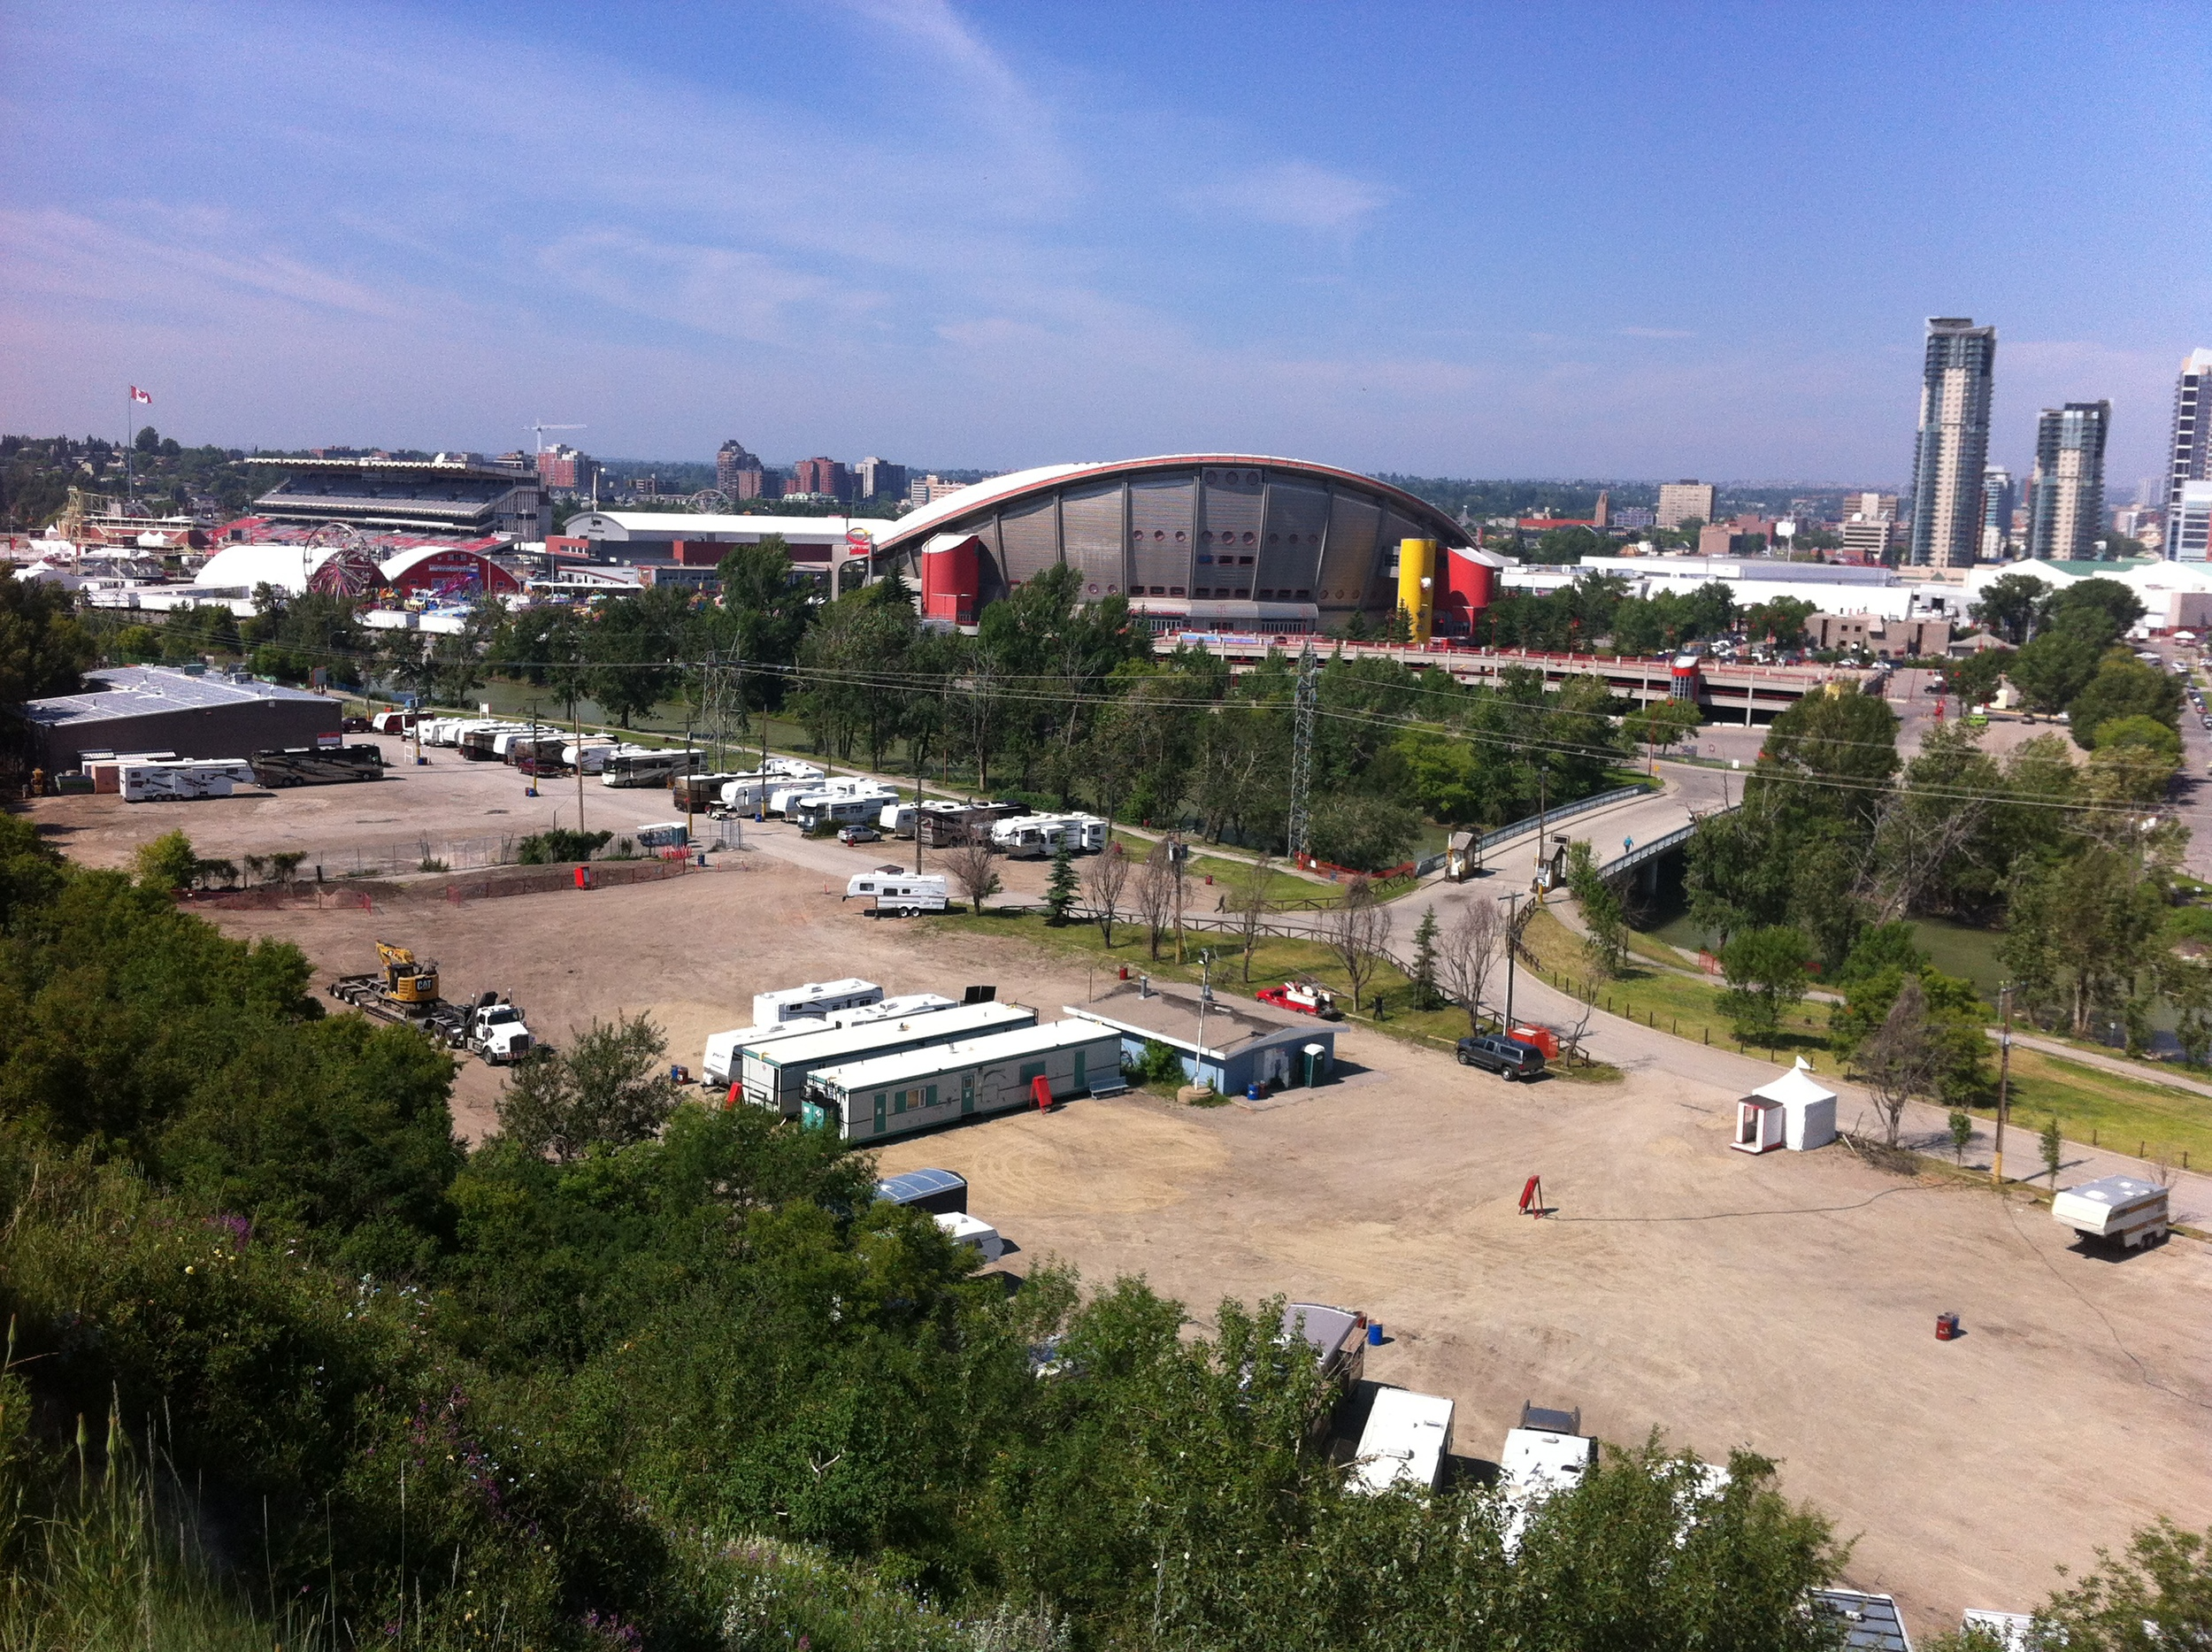 The site of the new ENMAX Park at Stampede next to the Elbow River. Putting the park back into parking lots.